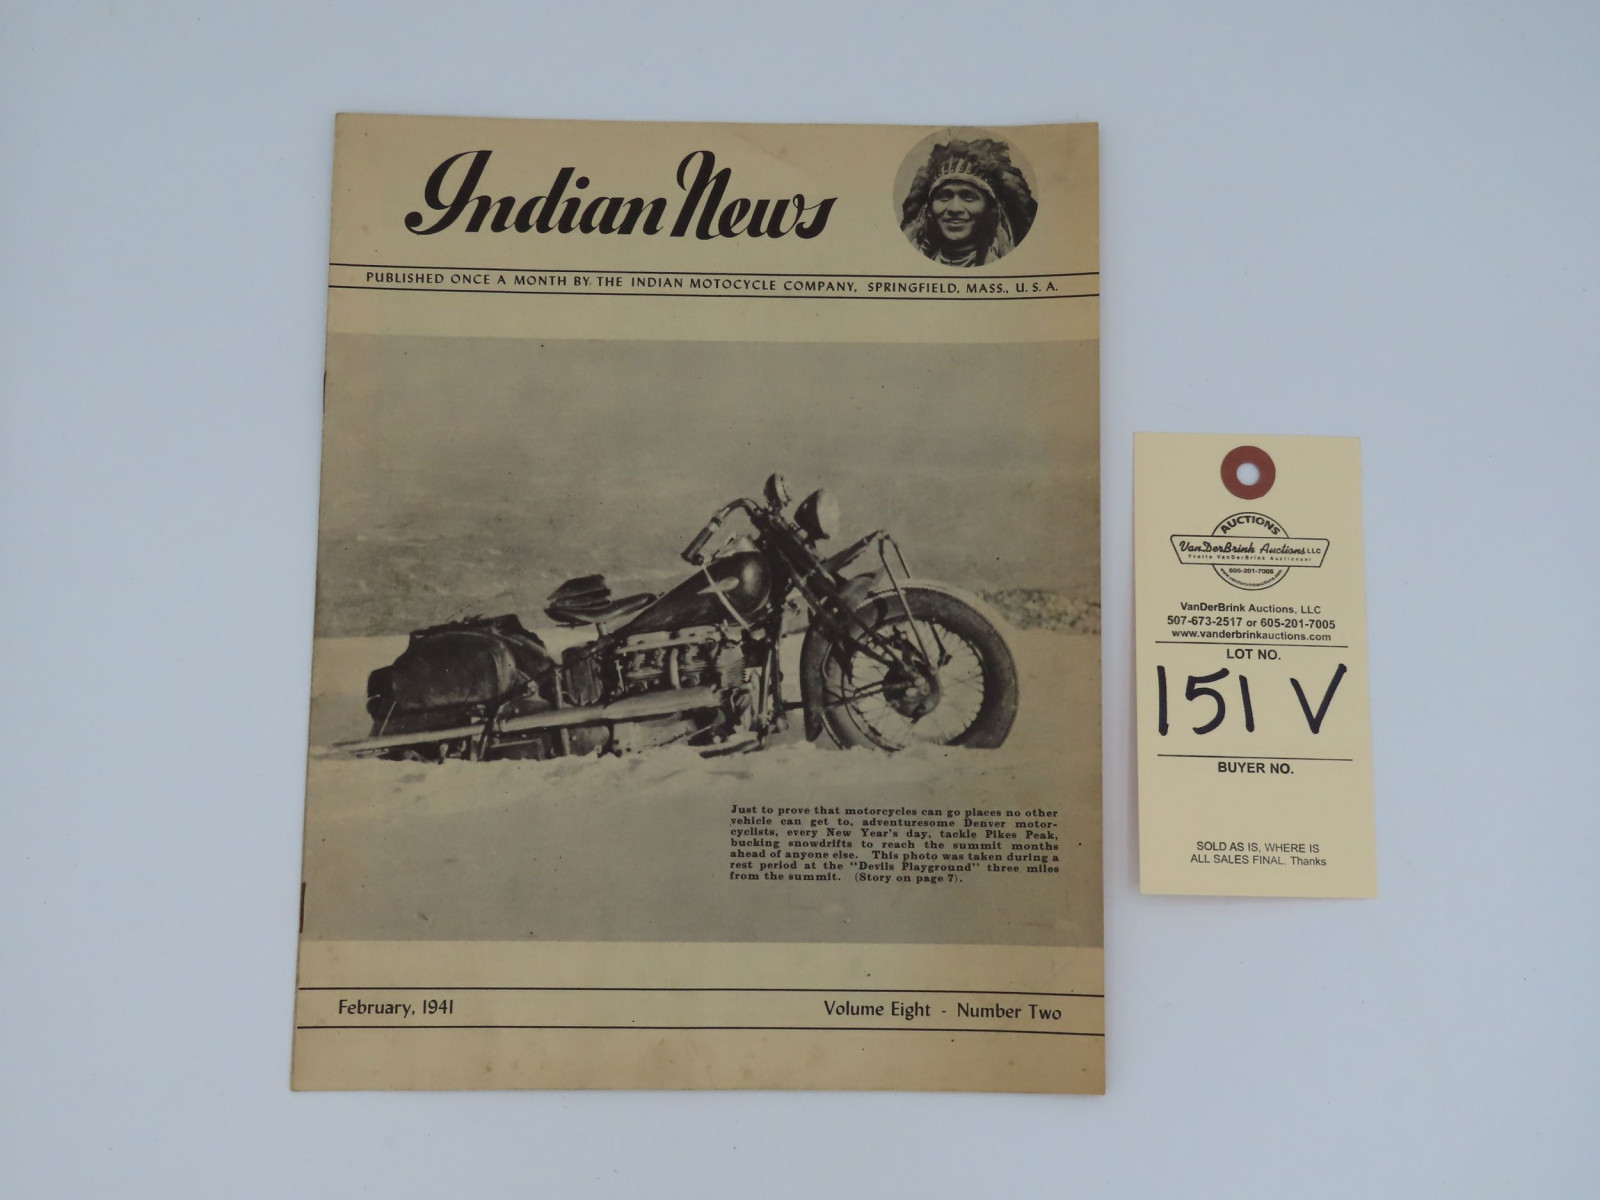 The Indian News - February 1941 - Image 1